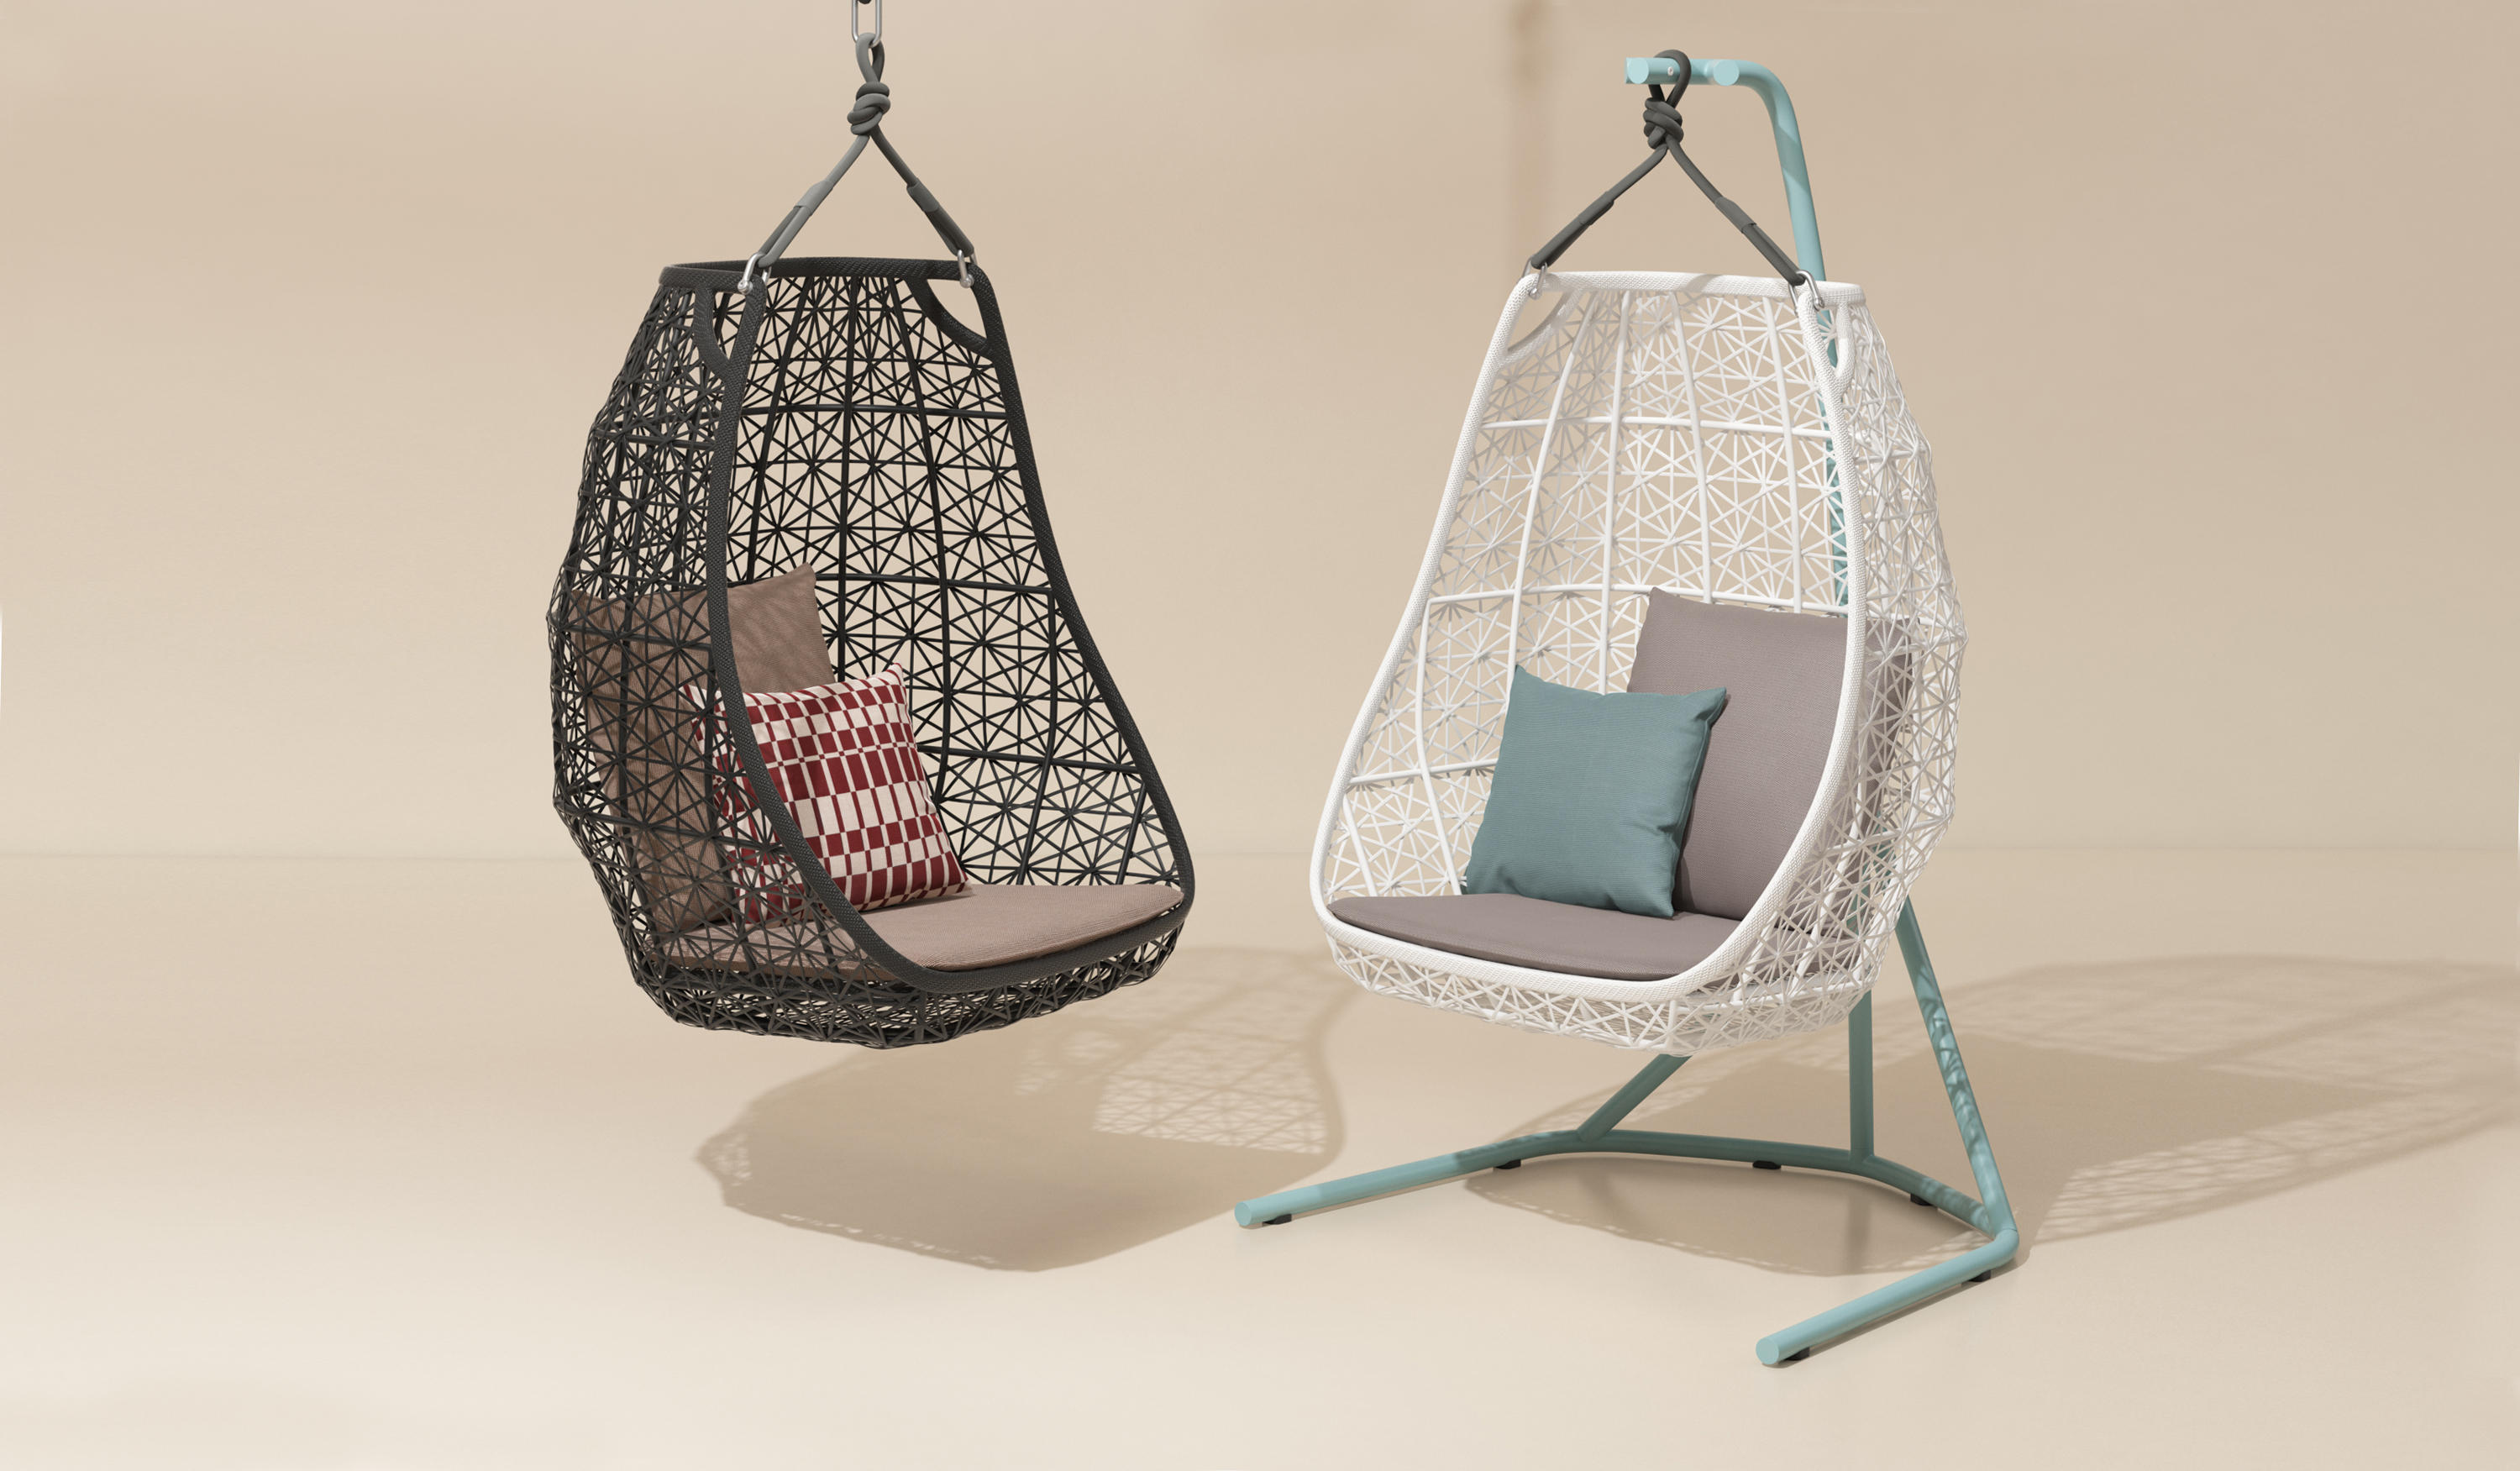 Maia egg swing swings from kettal architonic for Kettal maia